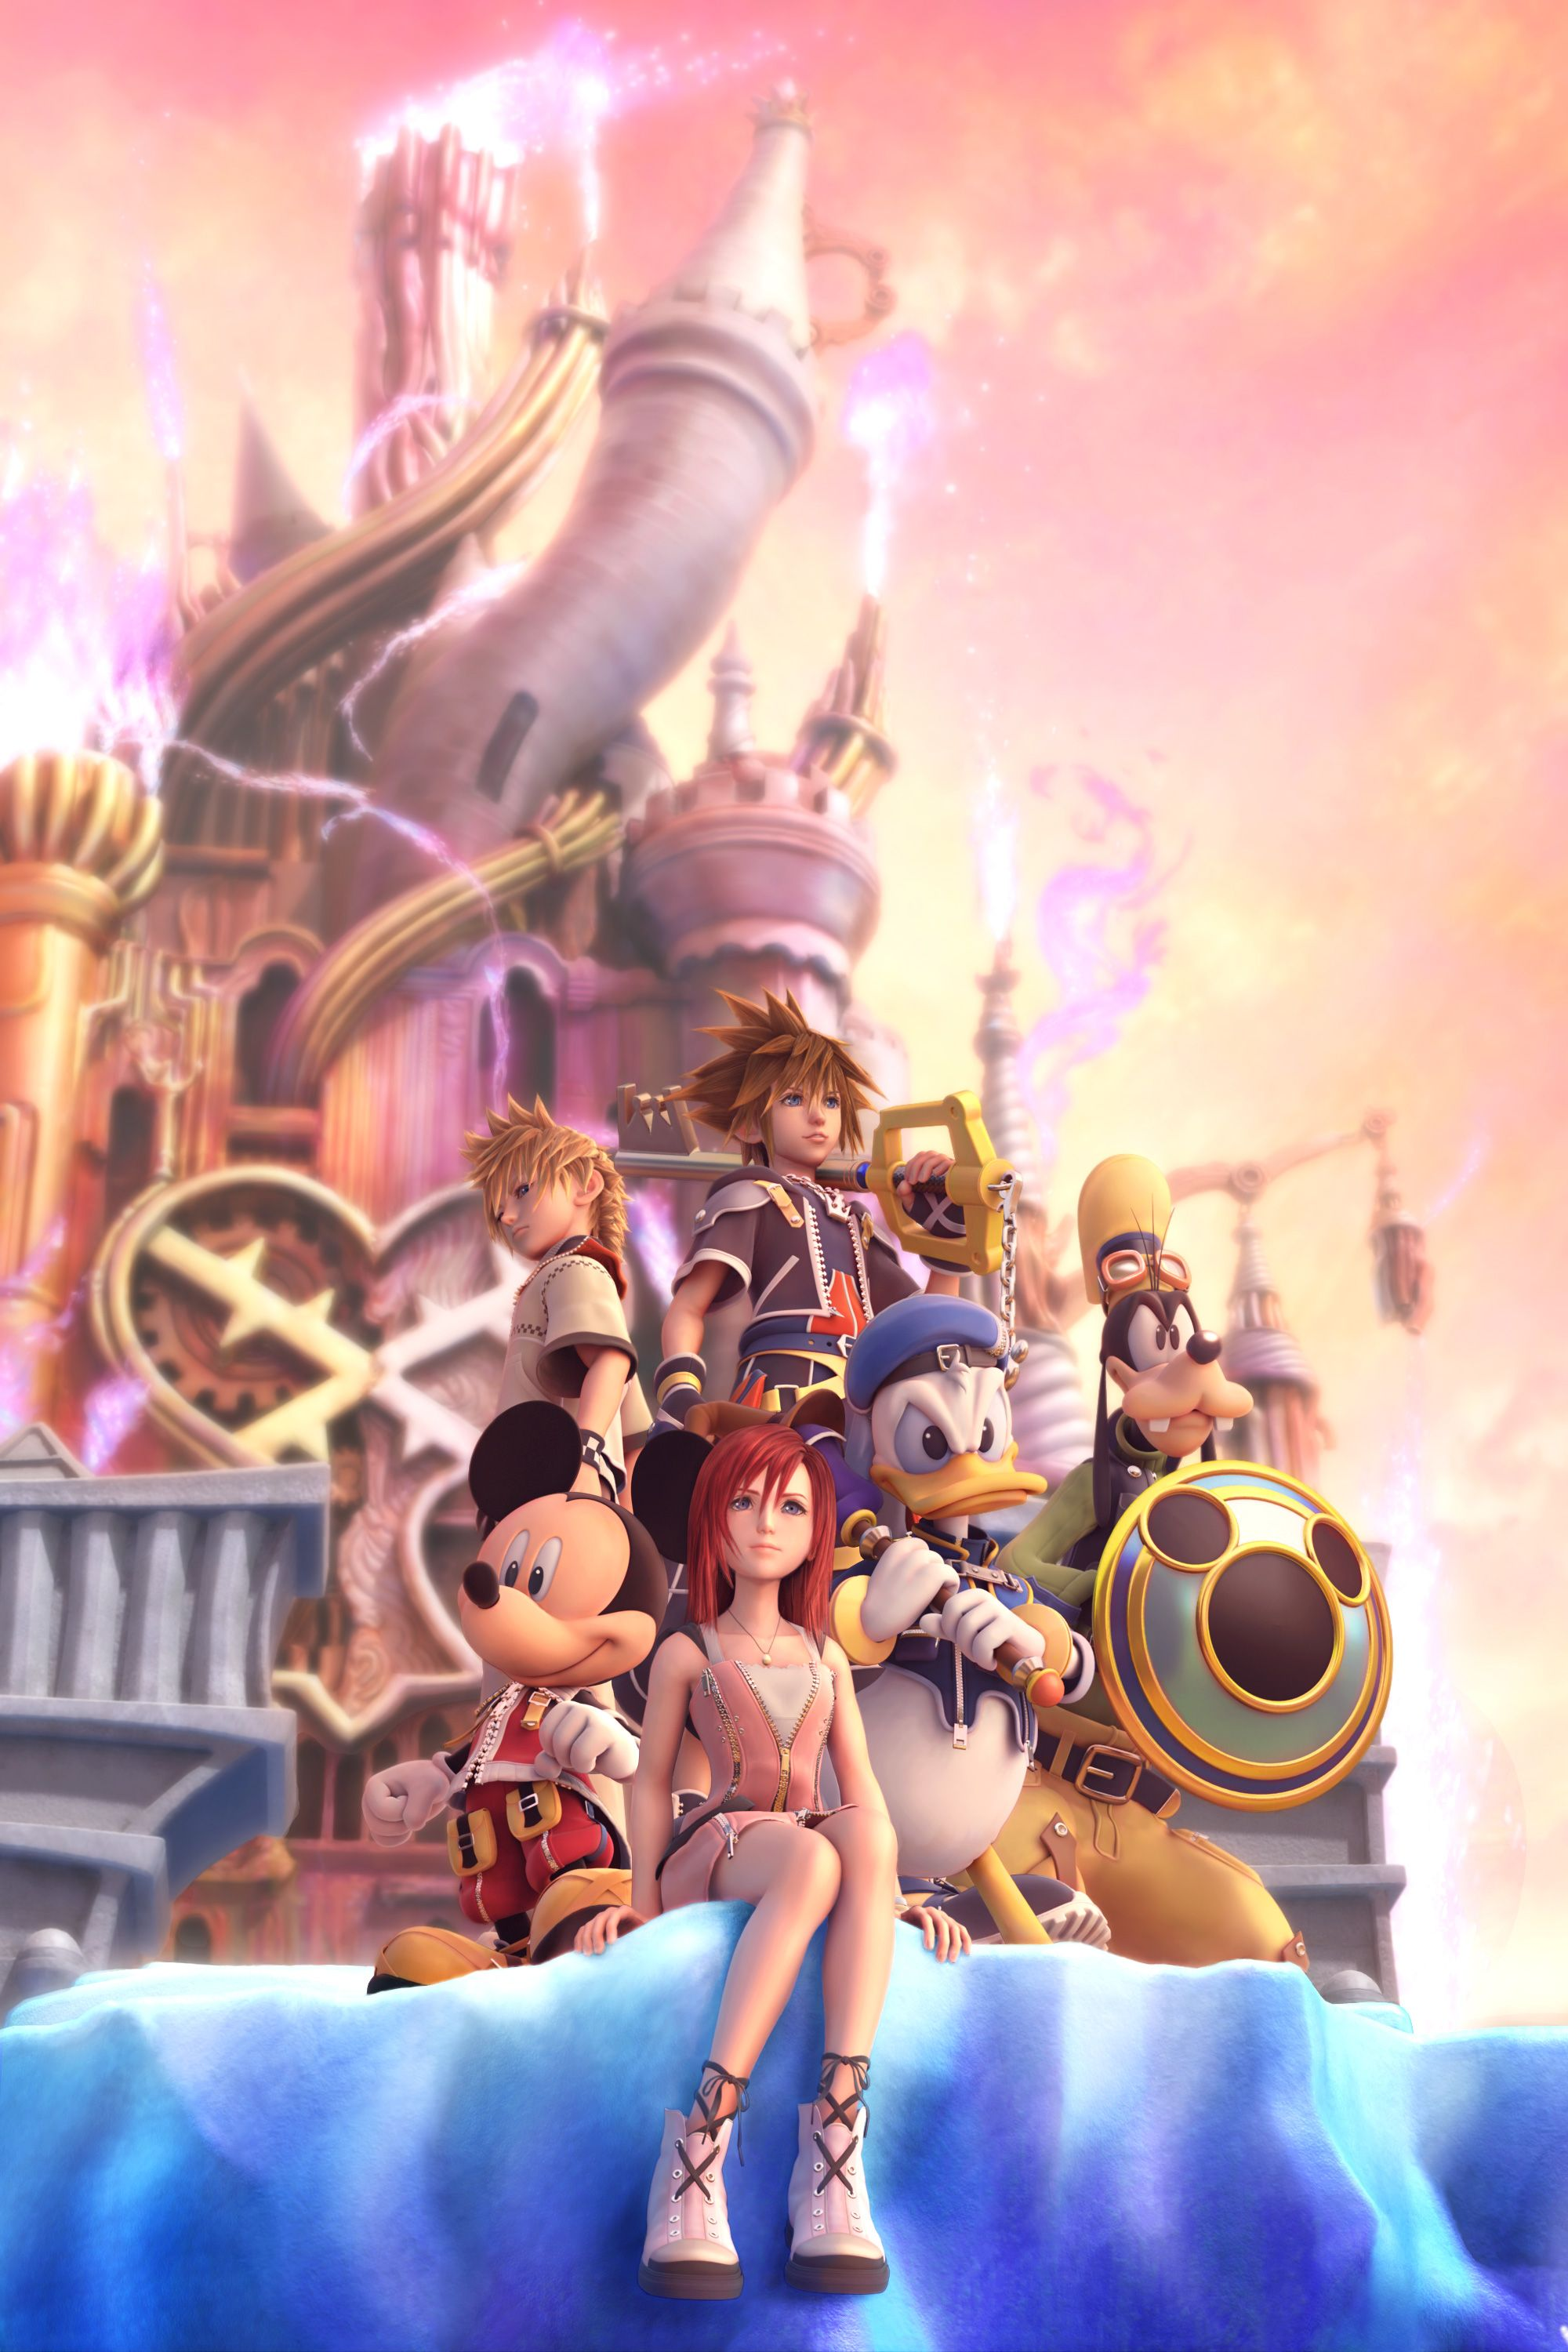 Kingdom Hearts Square Enix Disney Interactive Studios Kingdom Hearts Ii Promotional Art Kingdom Hearts Ii Kingdom Hearts Kingdom Hearts 3